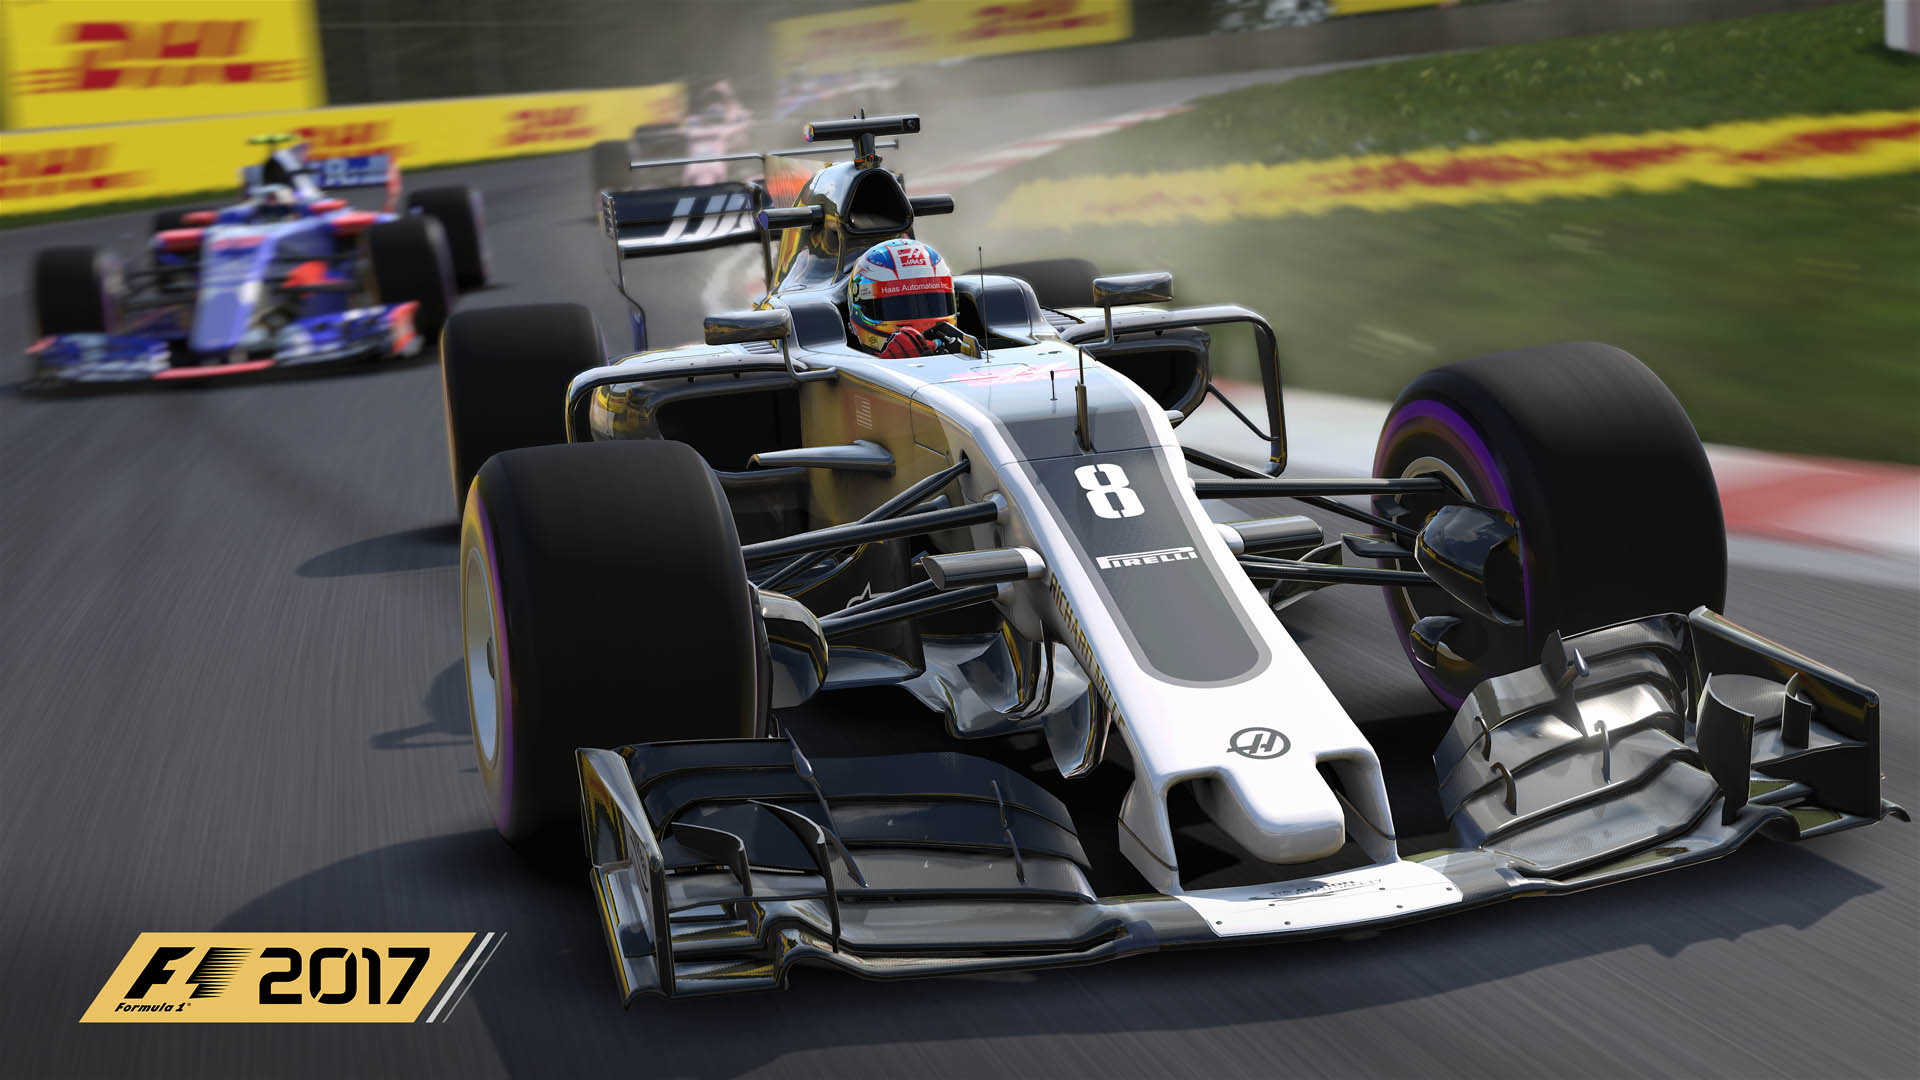 F1 2017 updated Haas livery